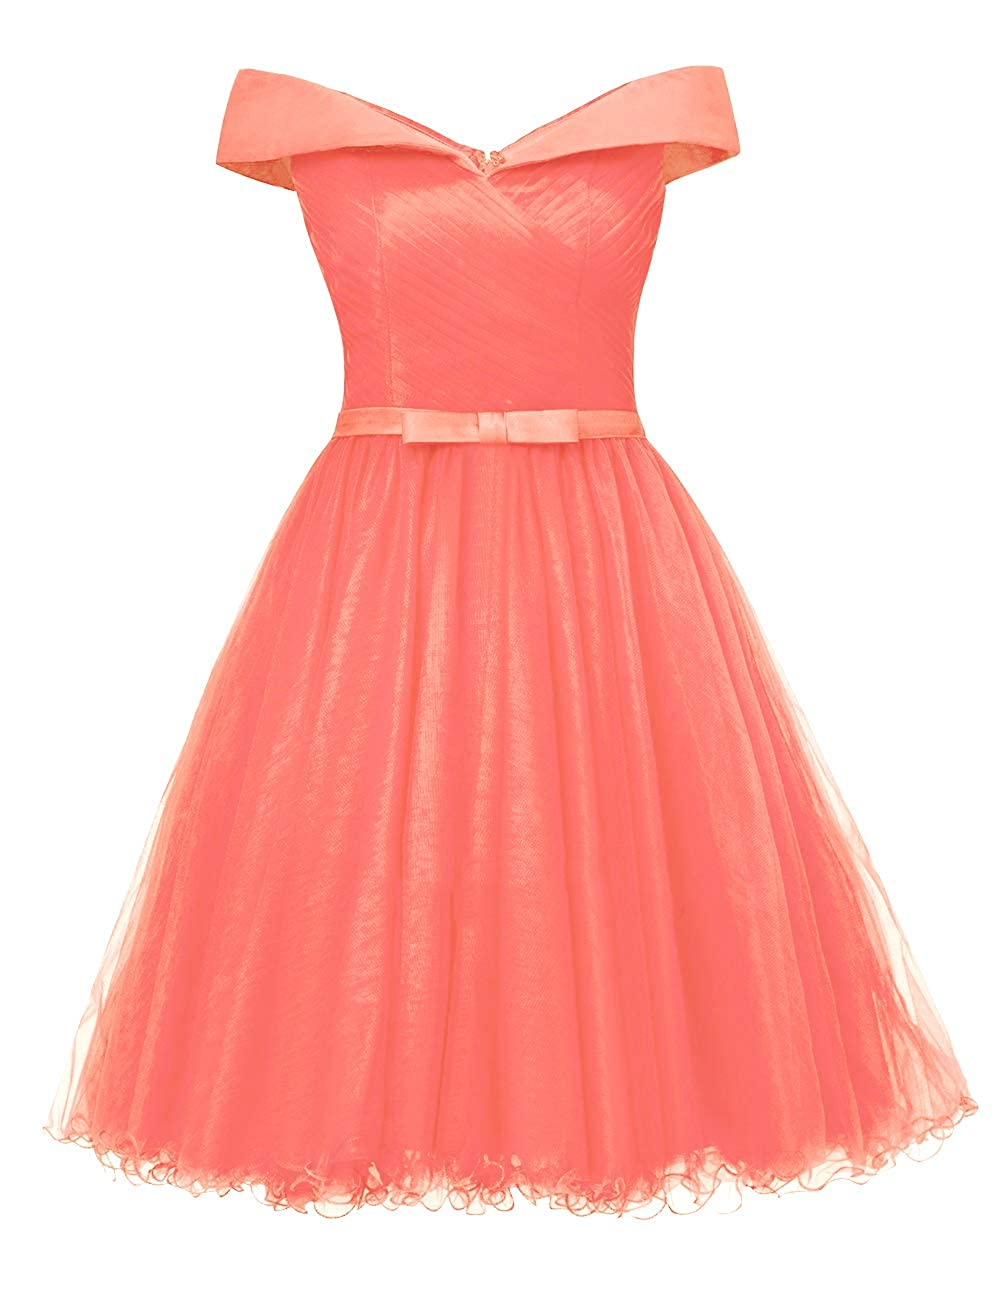 Coral Uther Off The Shoulder Prom Homecoming Dresses Knee Length Cocktail Dress Tulle Gown